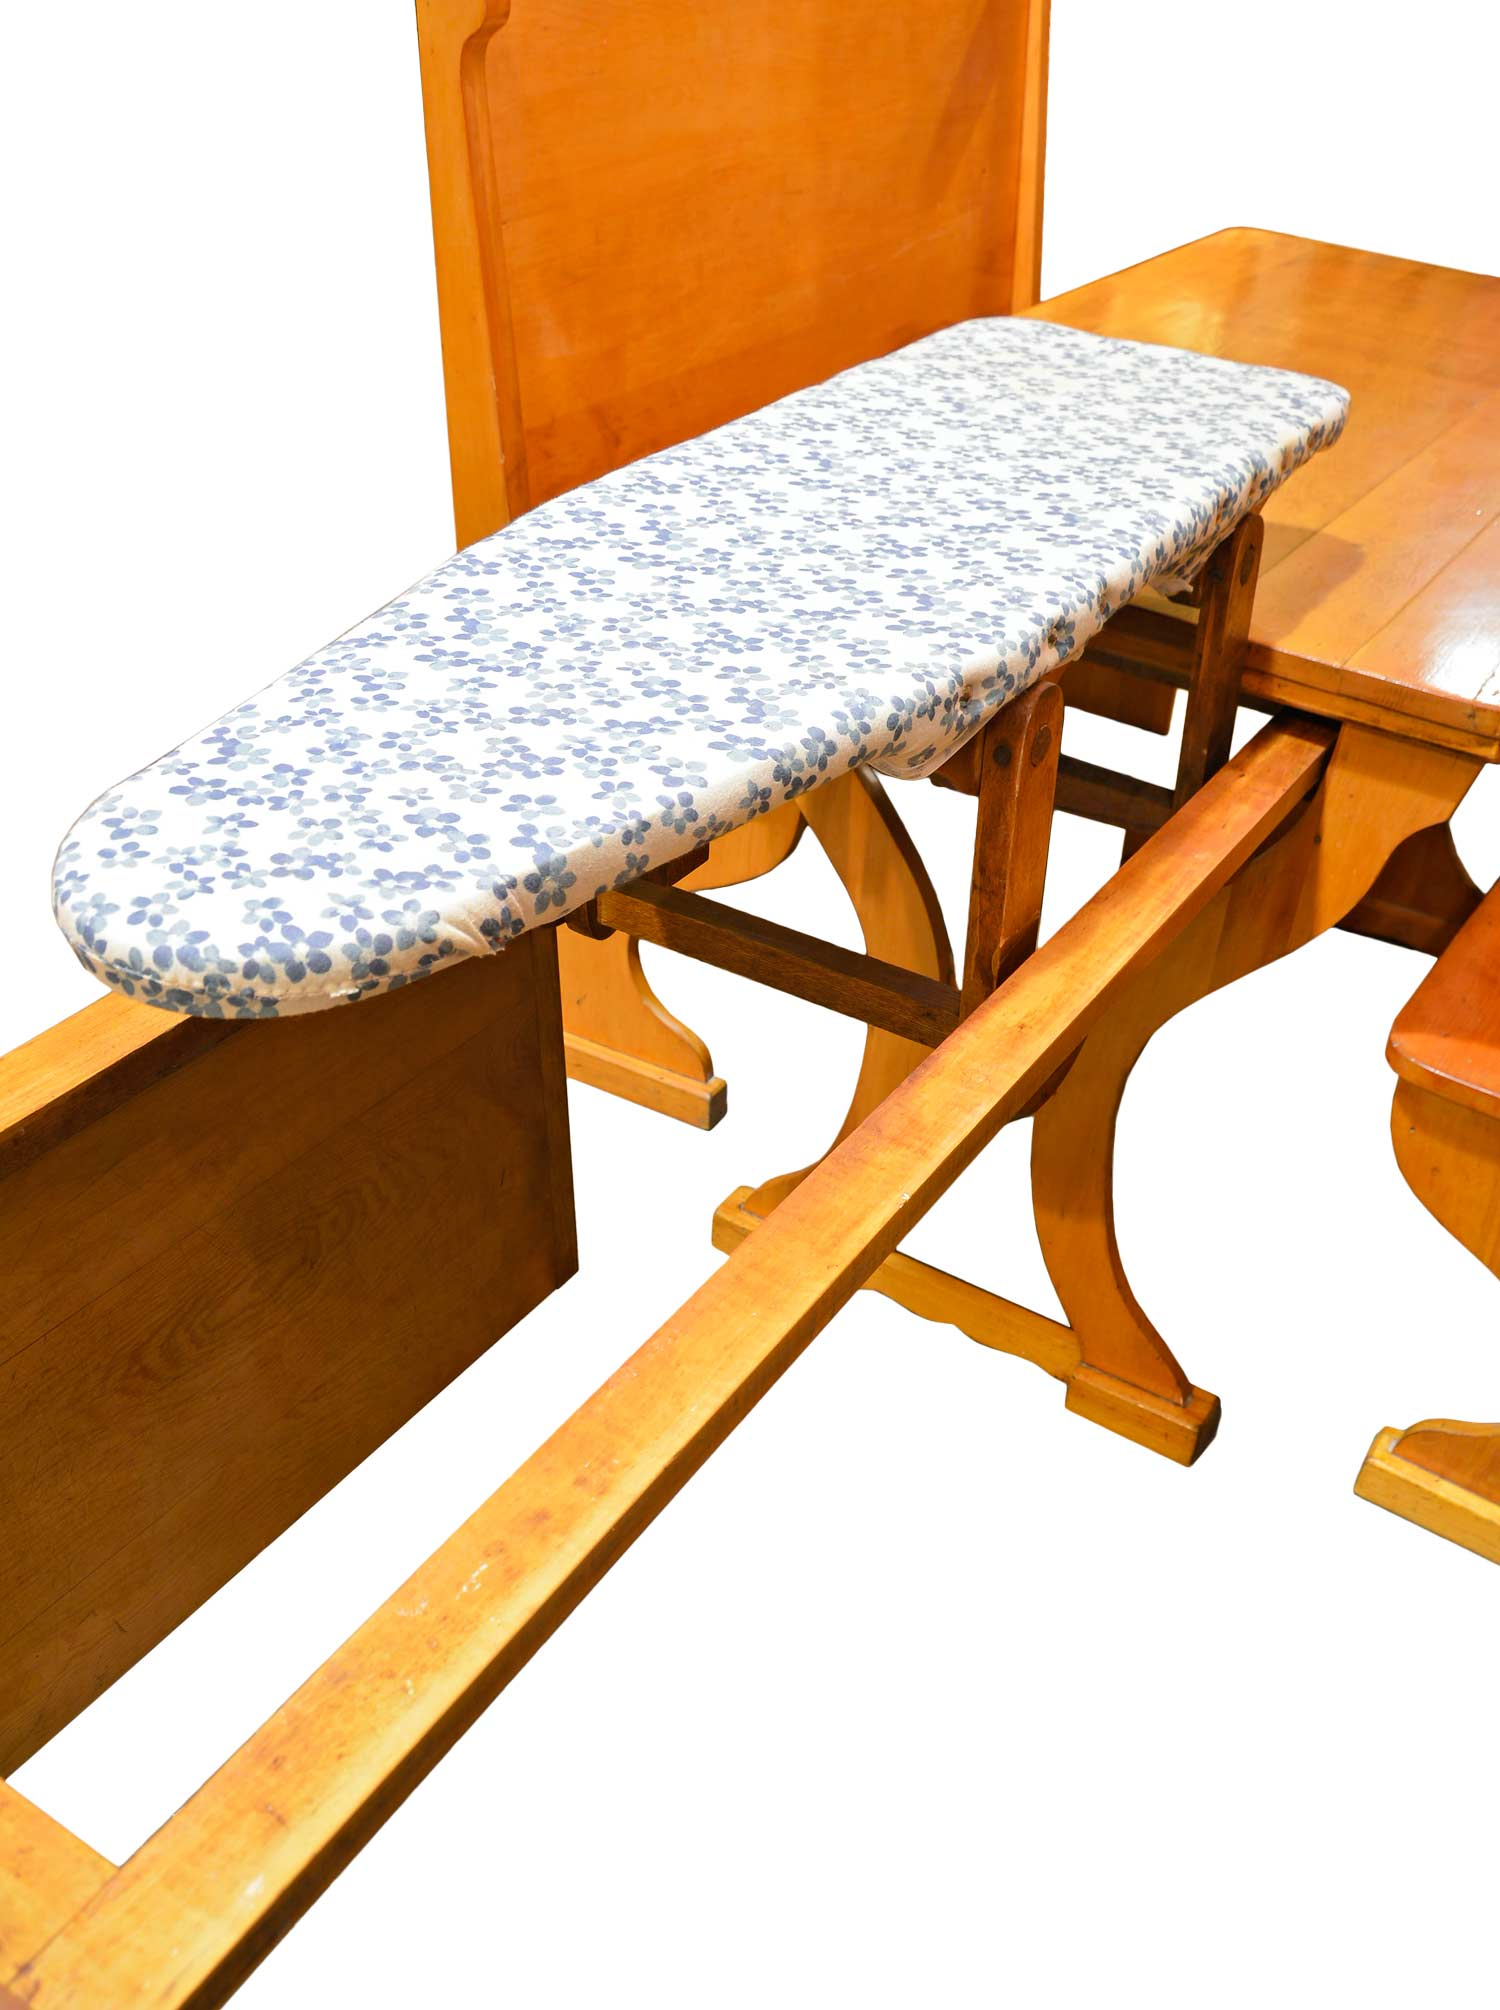 46043-maple-breakfast-nook-with-pull-out-table-ironing-board-up.jpg